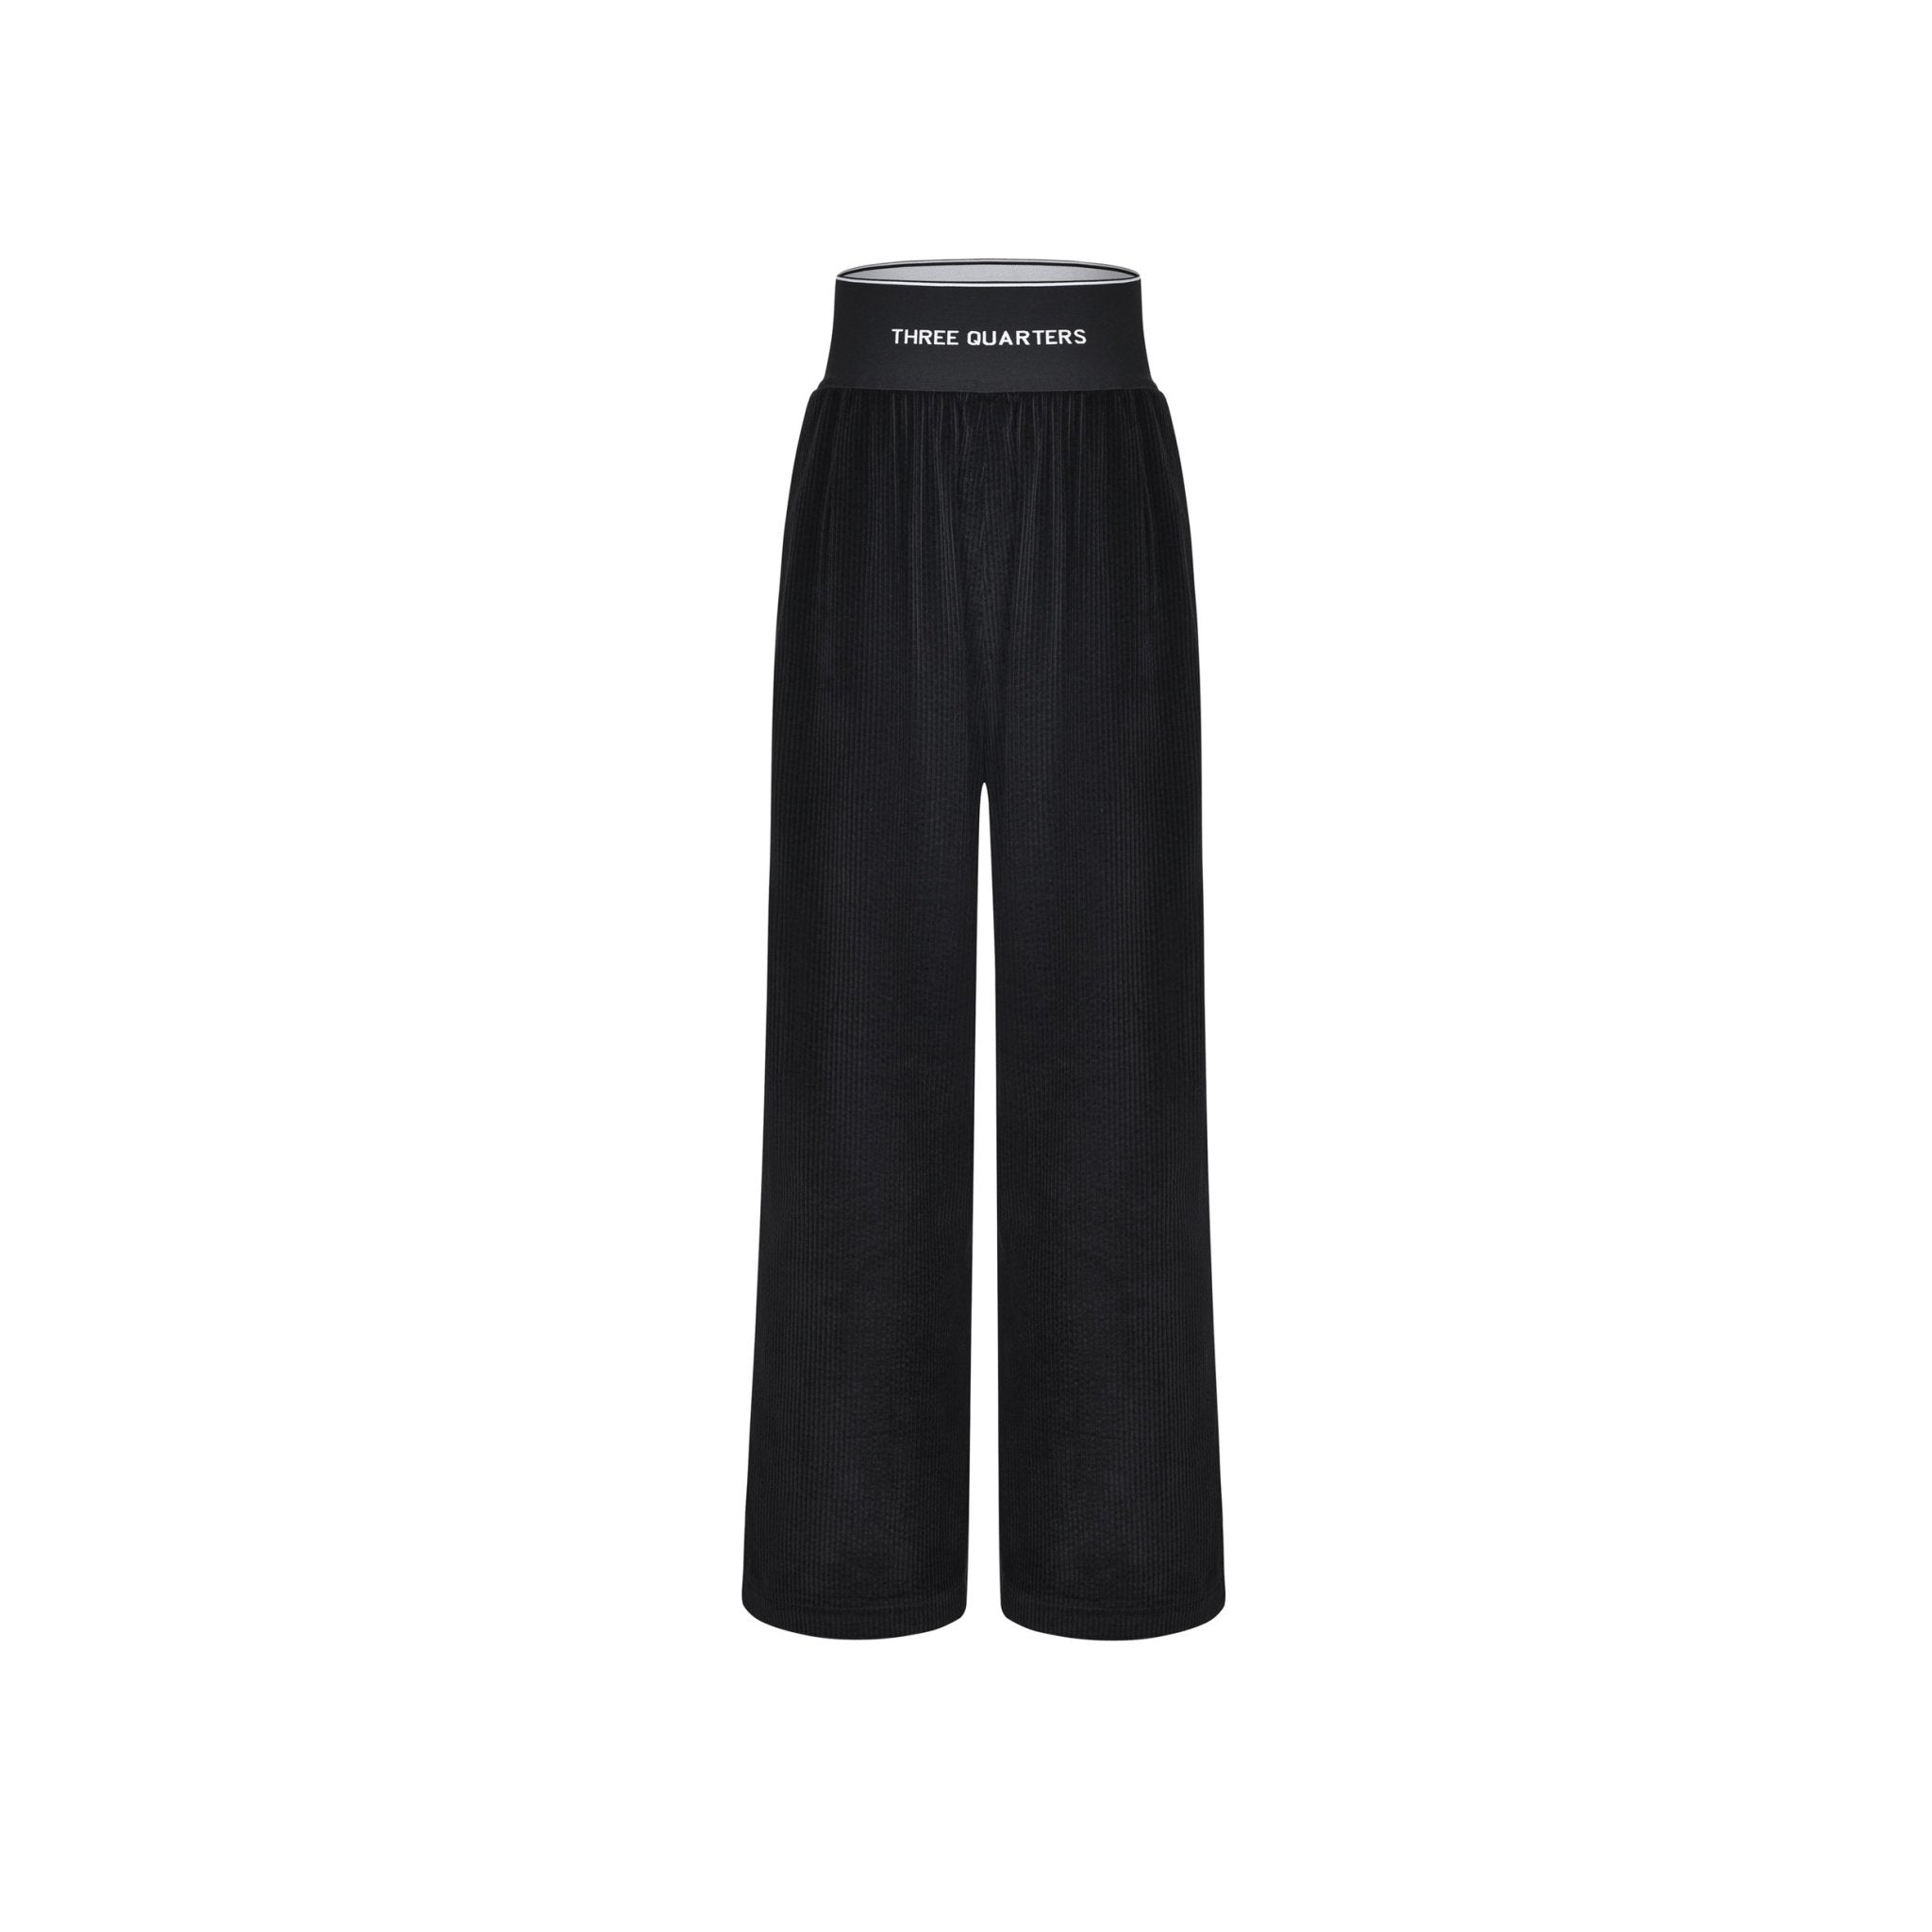 THREE QUARTERS Black Logo Corduroy Pants | MADA IN CHINA